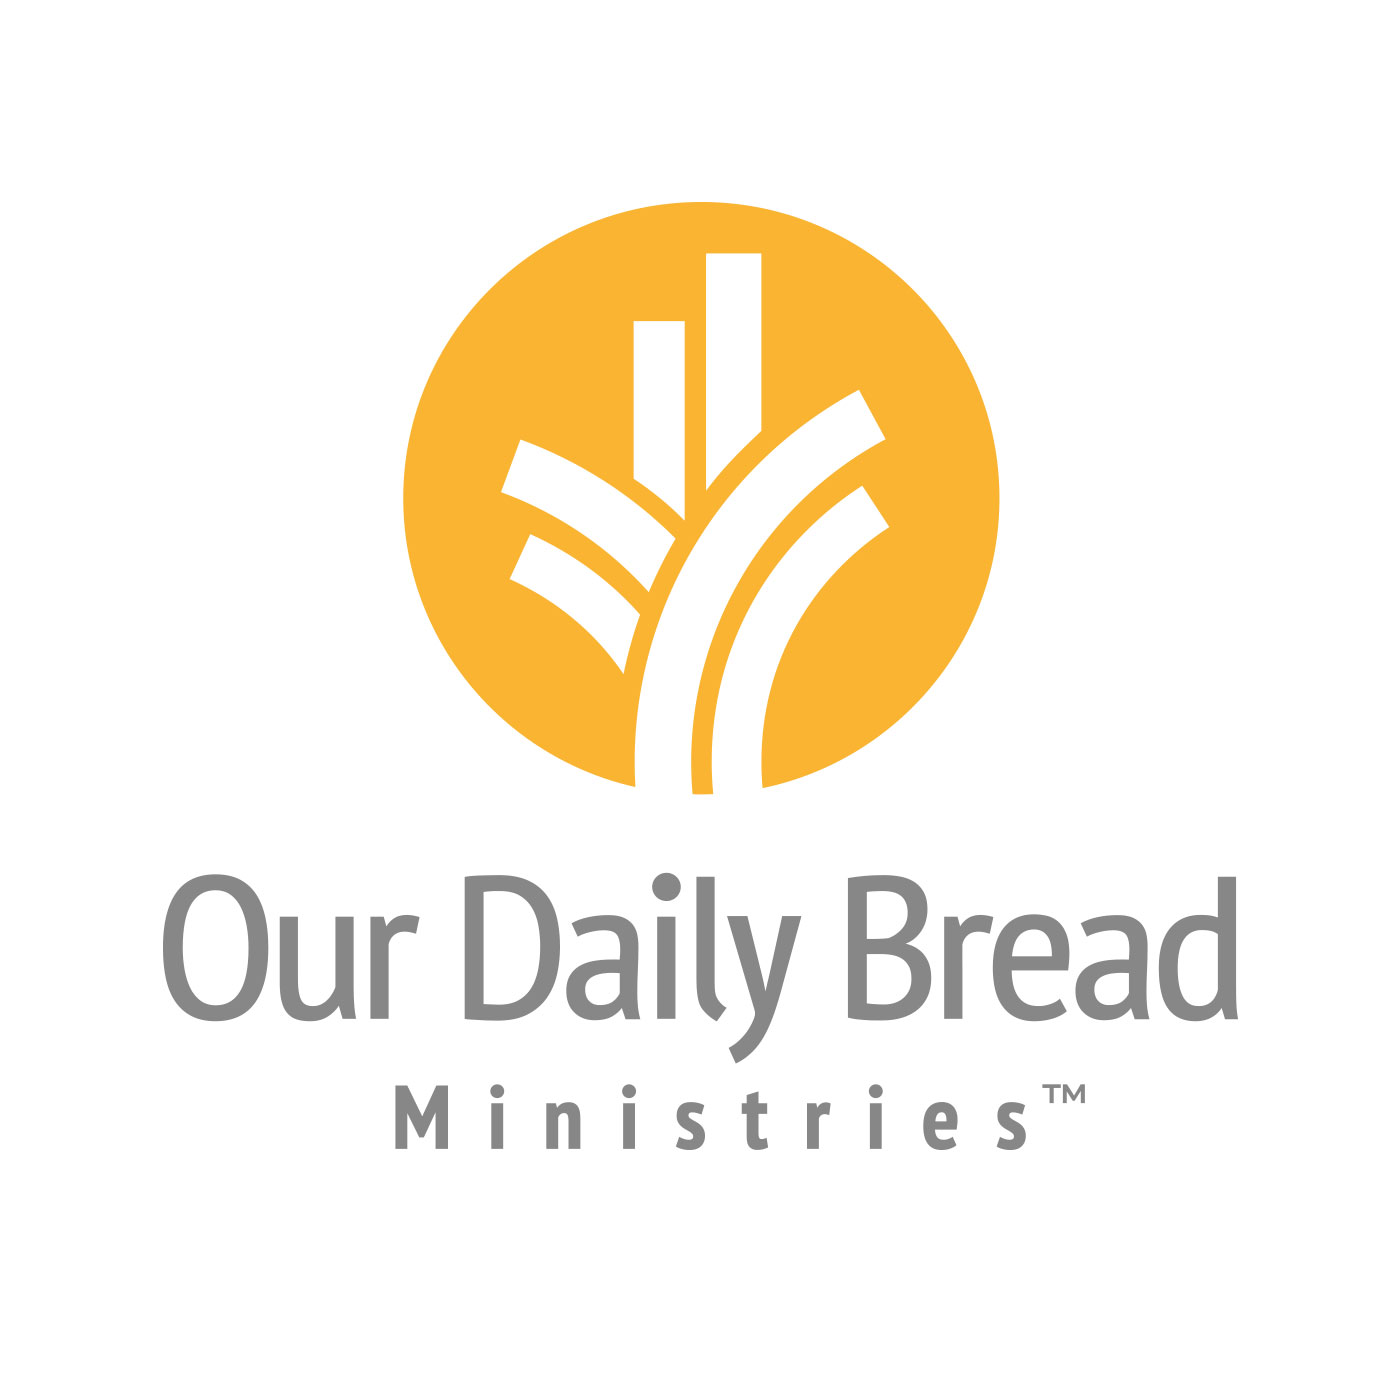 Our Daily Bread Sunday 10th January 2021 Today Devotional Message - Paper Crowns